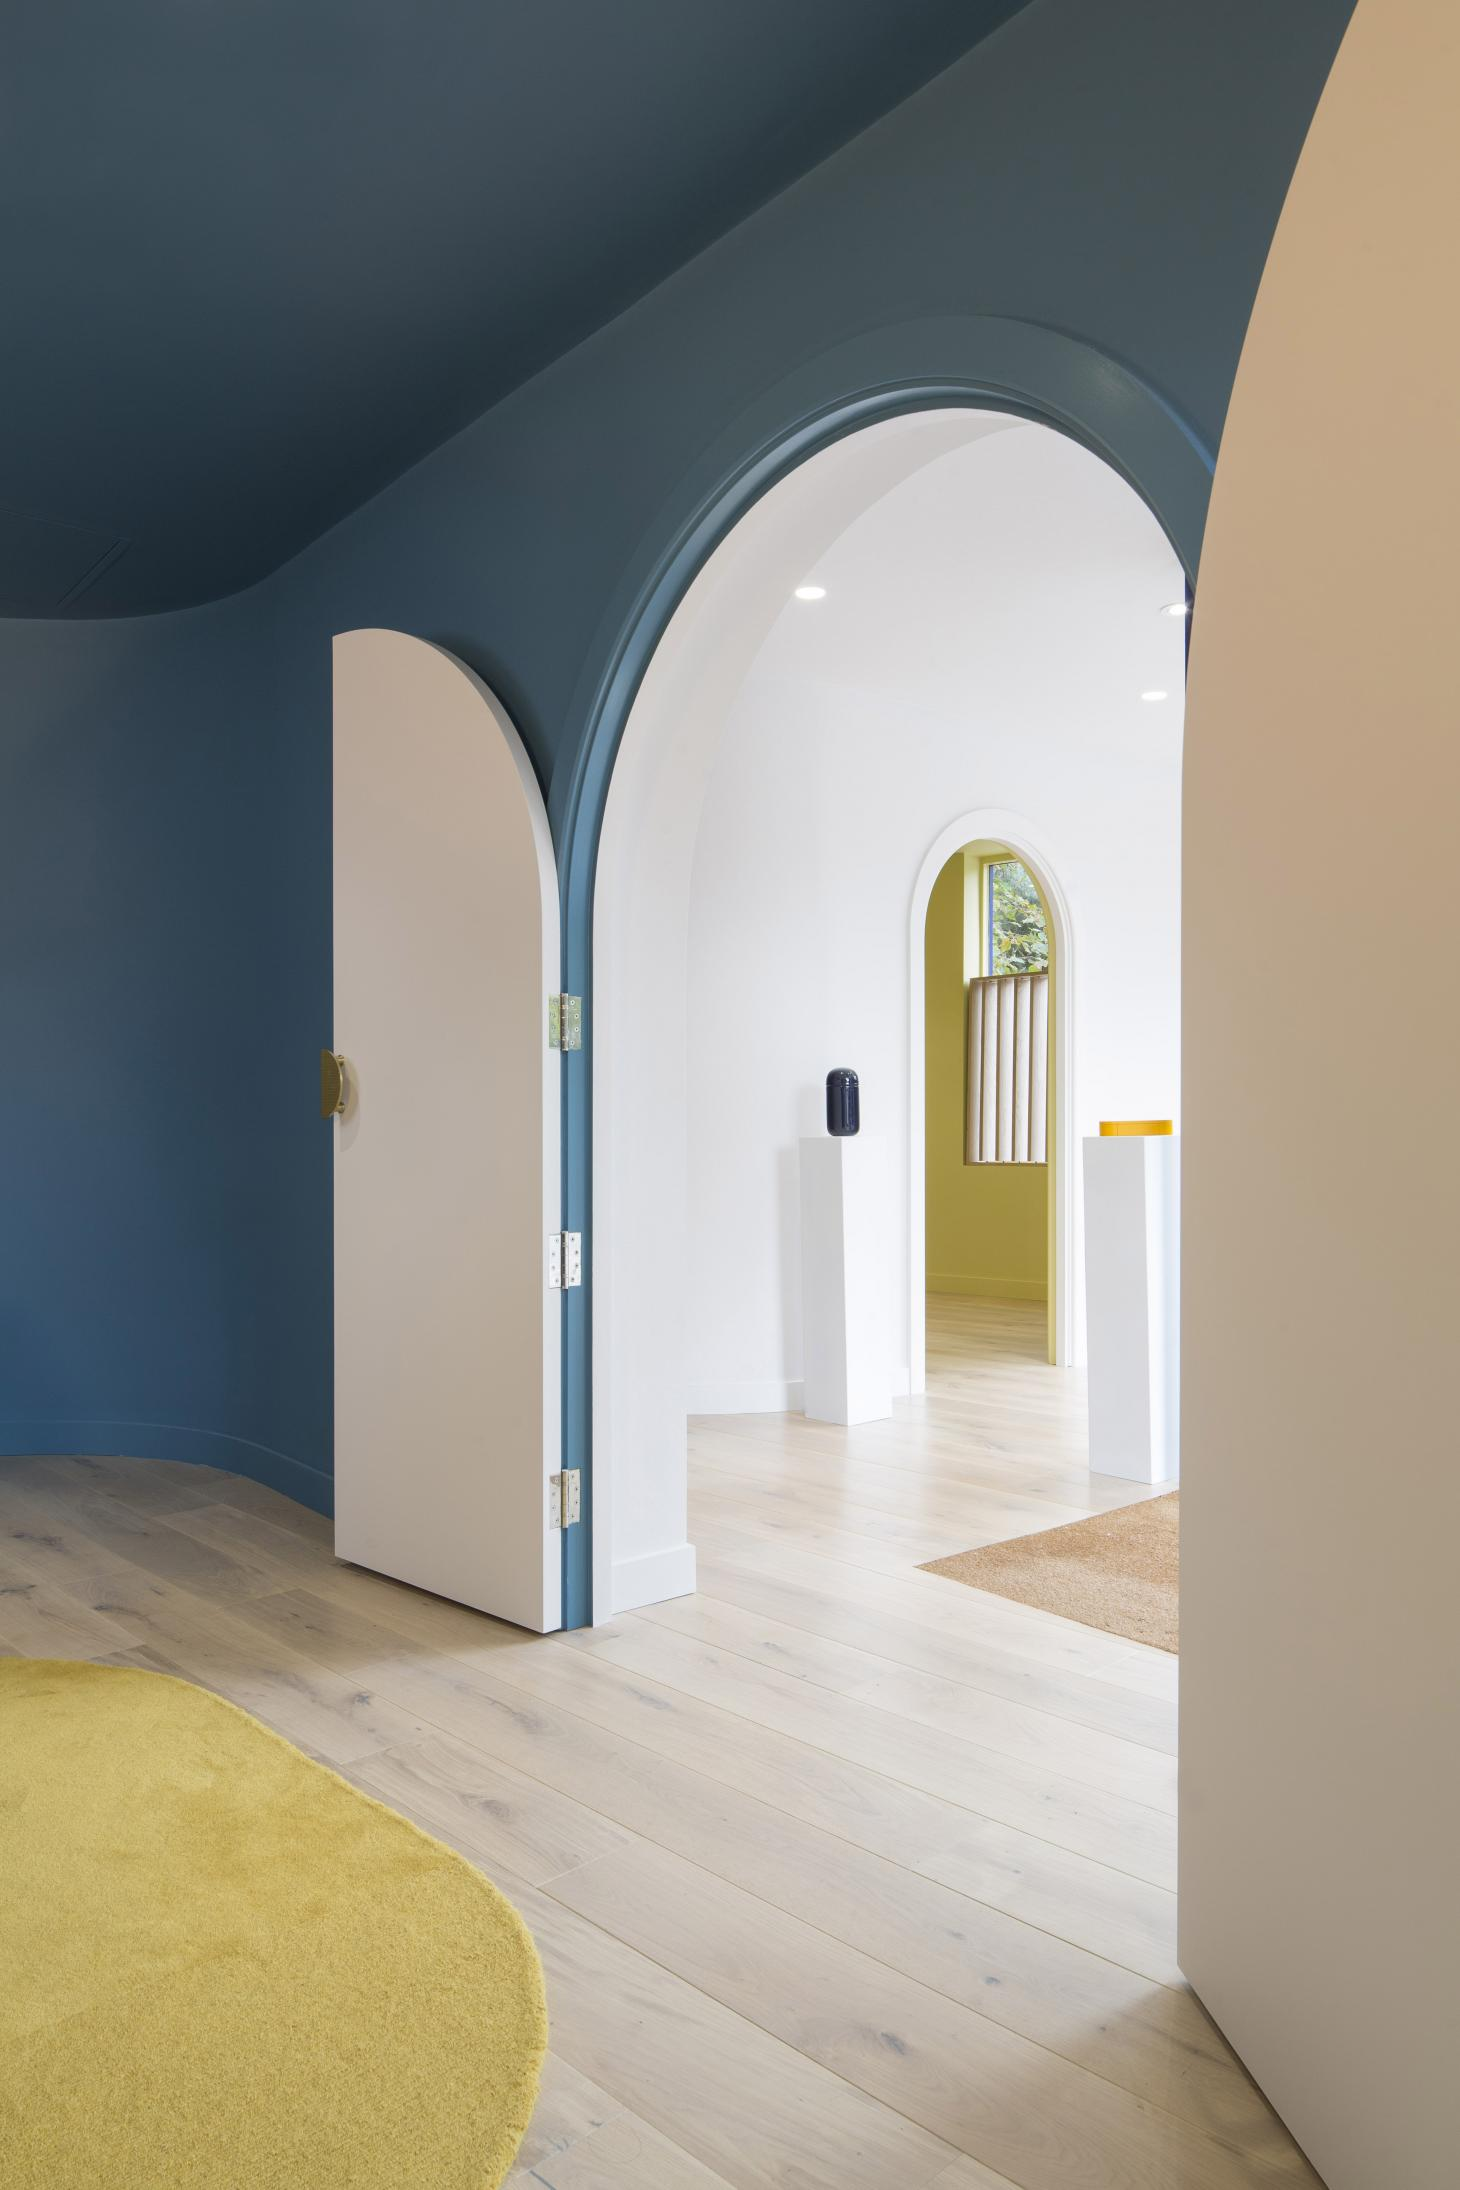 Interior view of 'Exit Here' funeral parlour